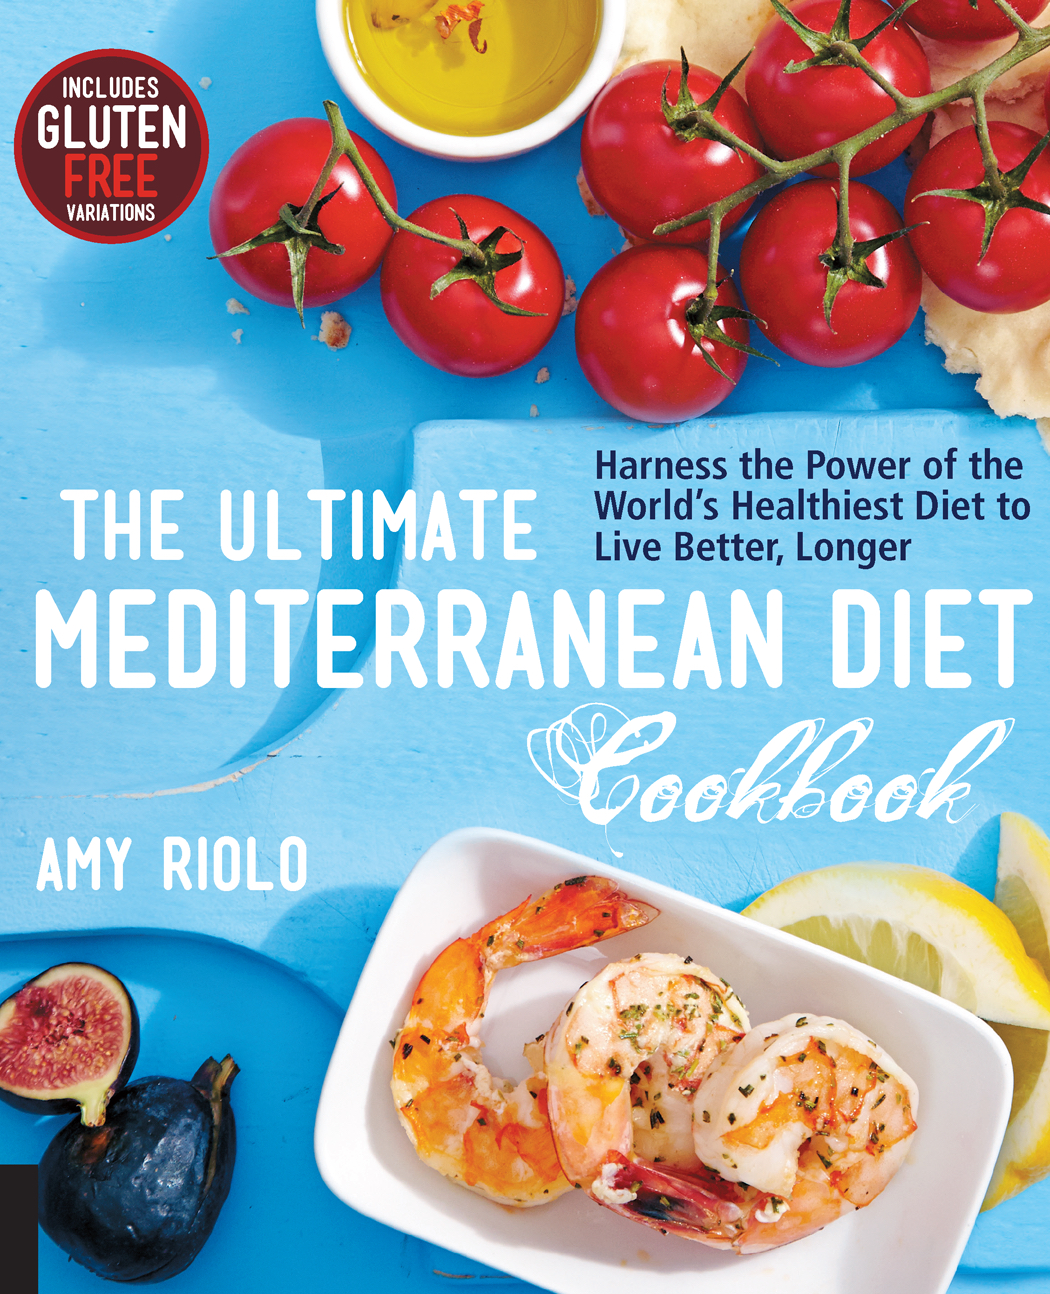 The Ultimate Mediterranean Diet Cookbook - Amy Riolo - The Mediterranean Lifestyle